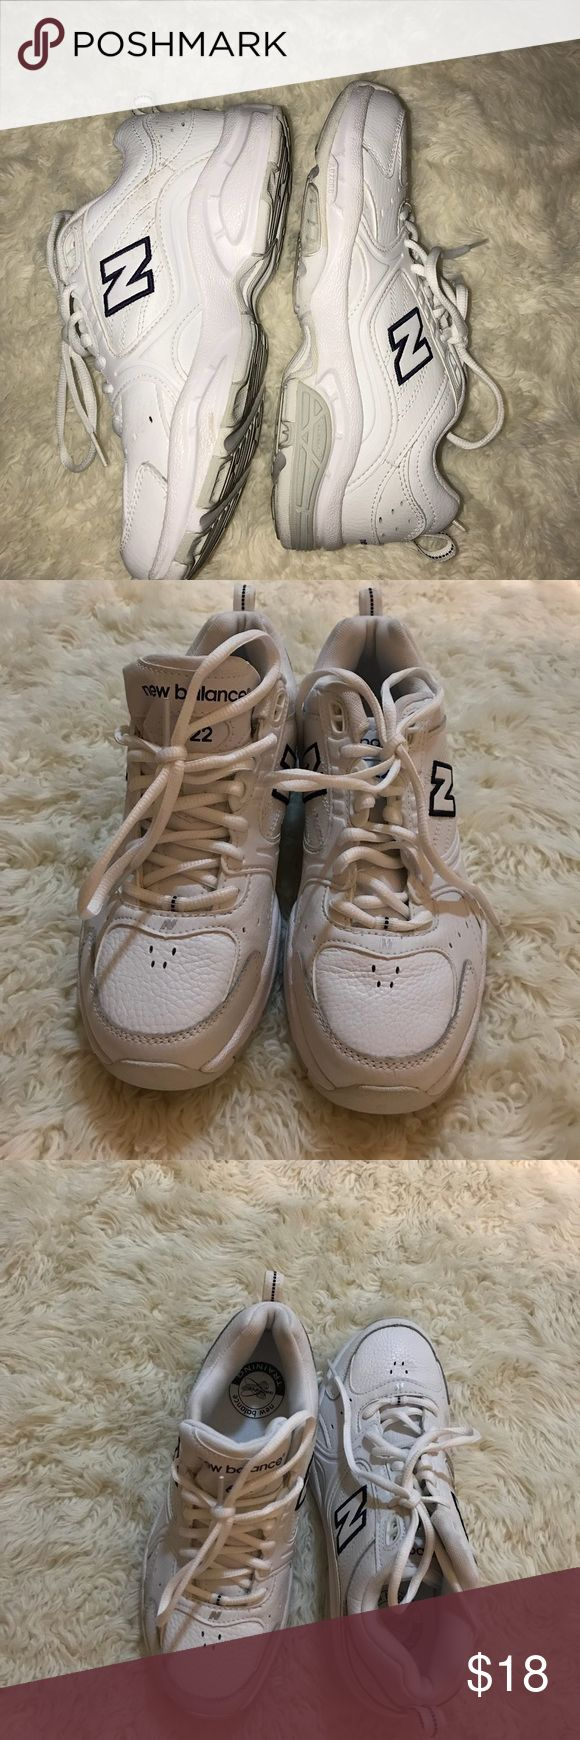 Woman's New Balance gym shoes Rarely worn woman's new balance white gym shoes style 622 size 7.5 New Balance Shoes Athletic Shoes